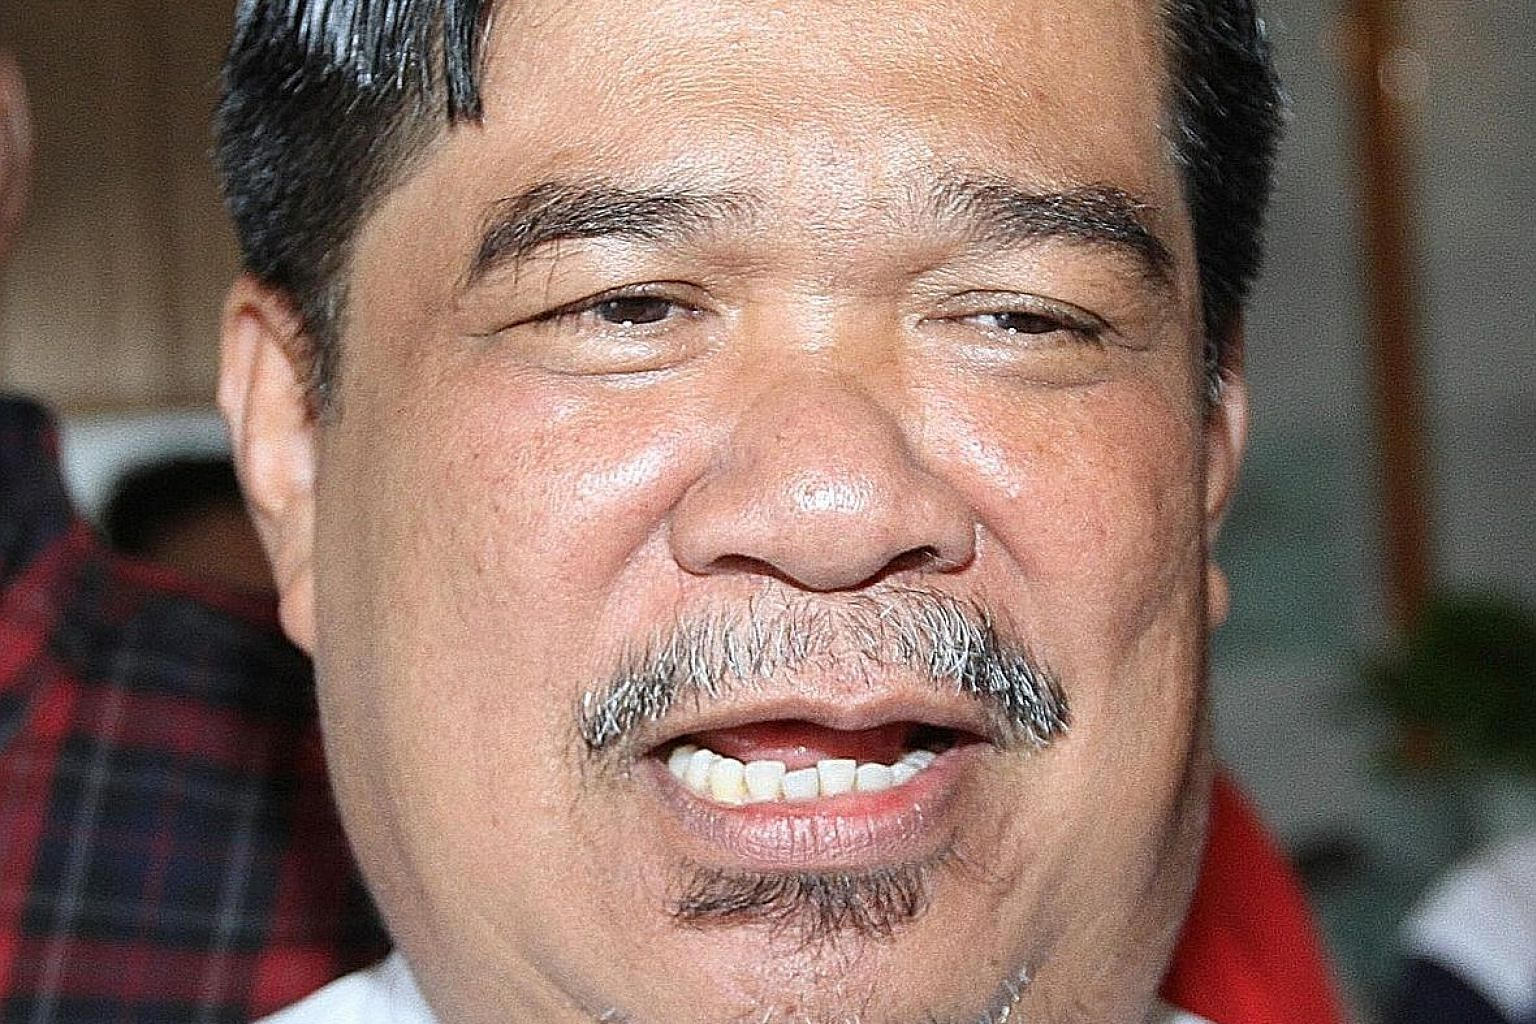 Mr Mohamad Sabu is the leader of the informal group called G18, which was set up by PAS progressives.